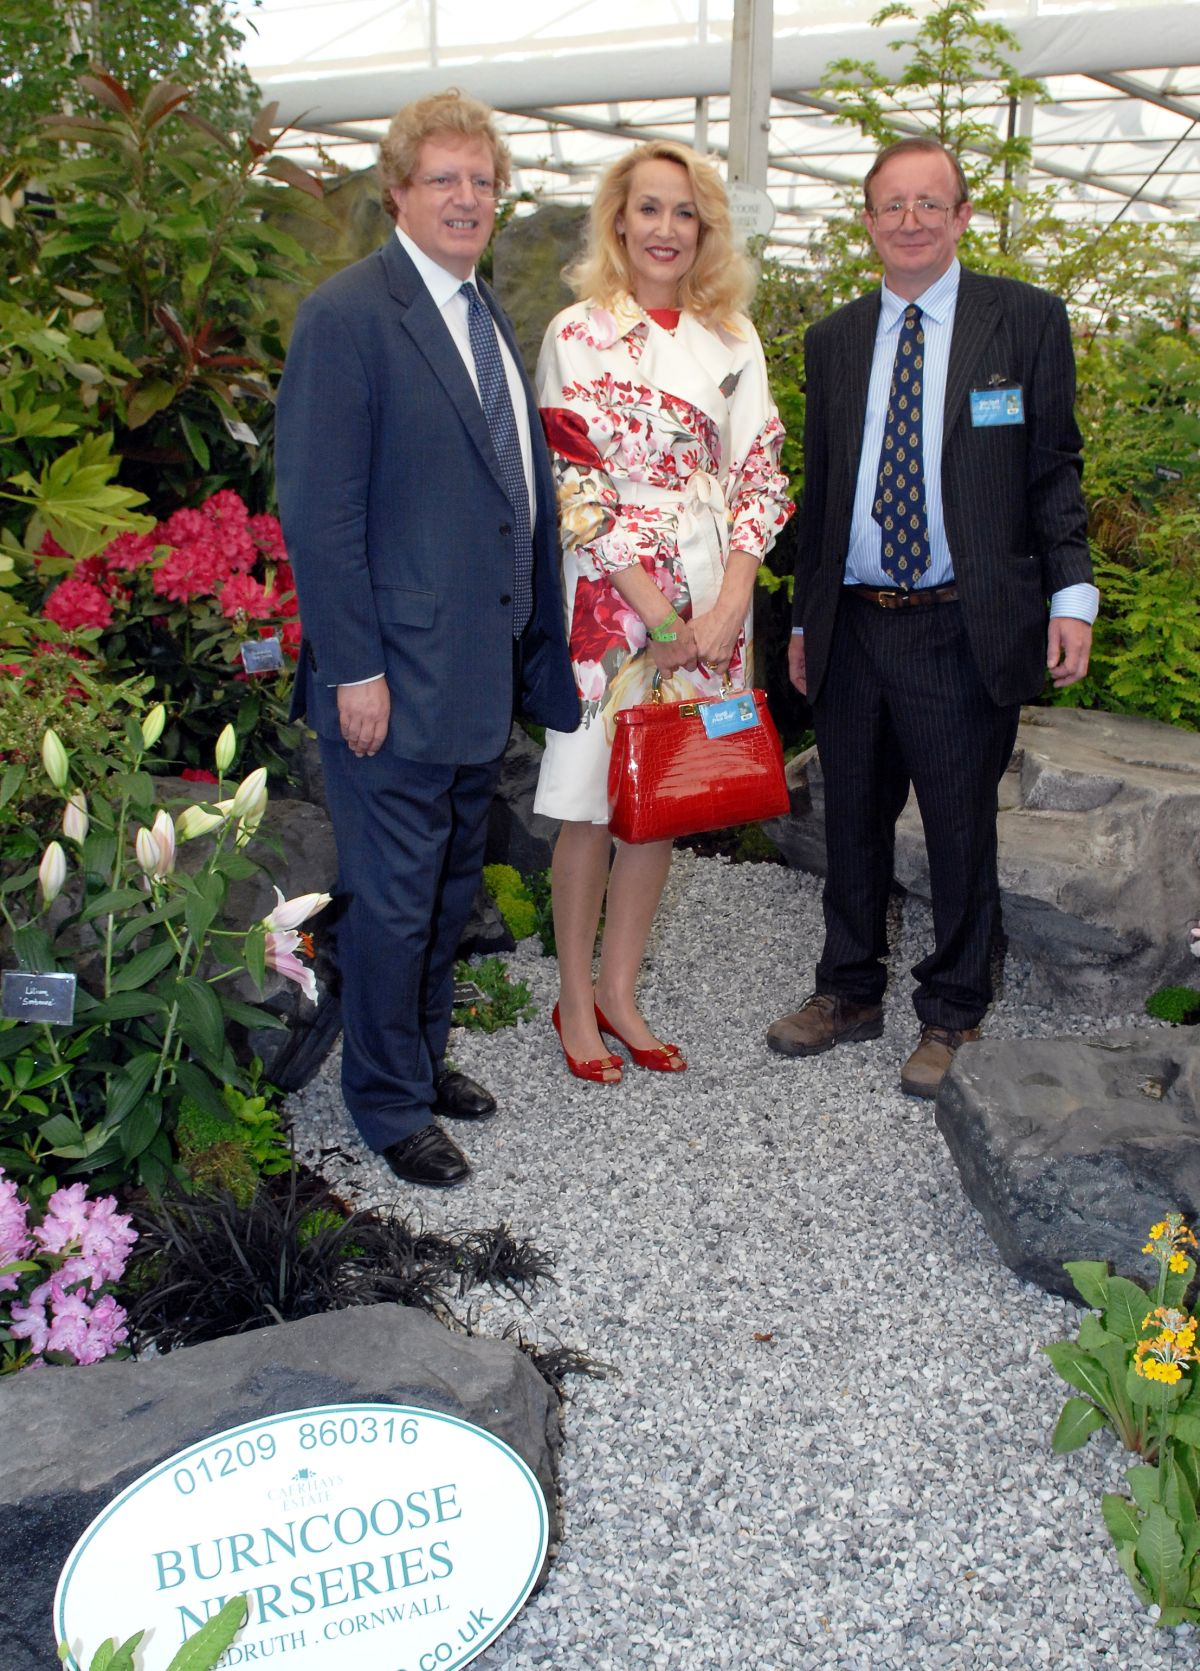 Chairman and Chief Investment Officer of Terra Firma, Guy Hands, Prince's Trust Ambassador, Jerry Hall and Owner of Burncoose Nurseries, Charles Williams.